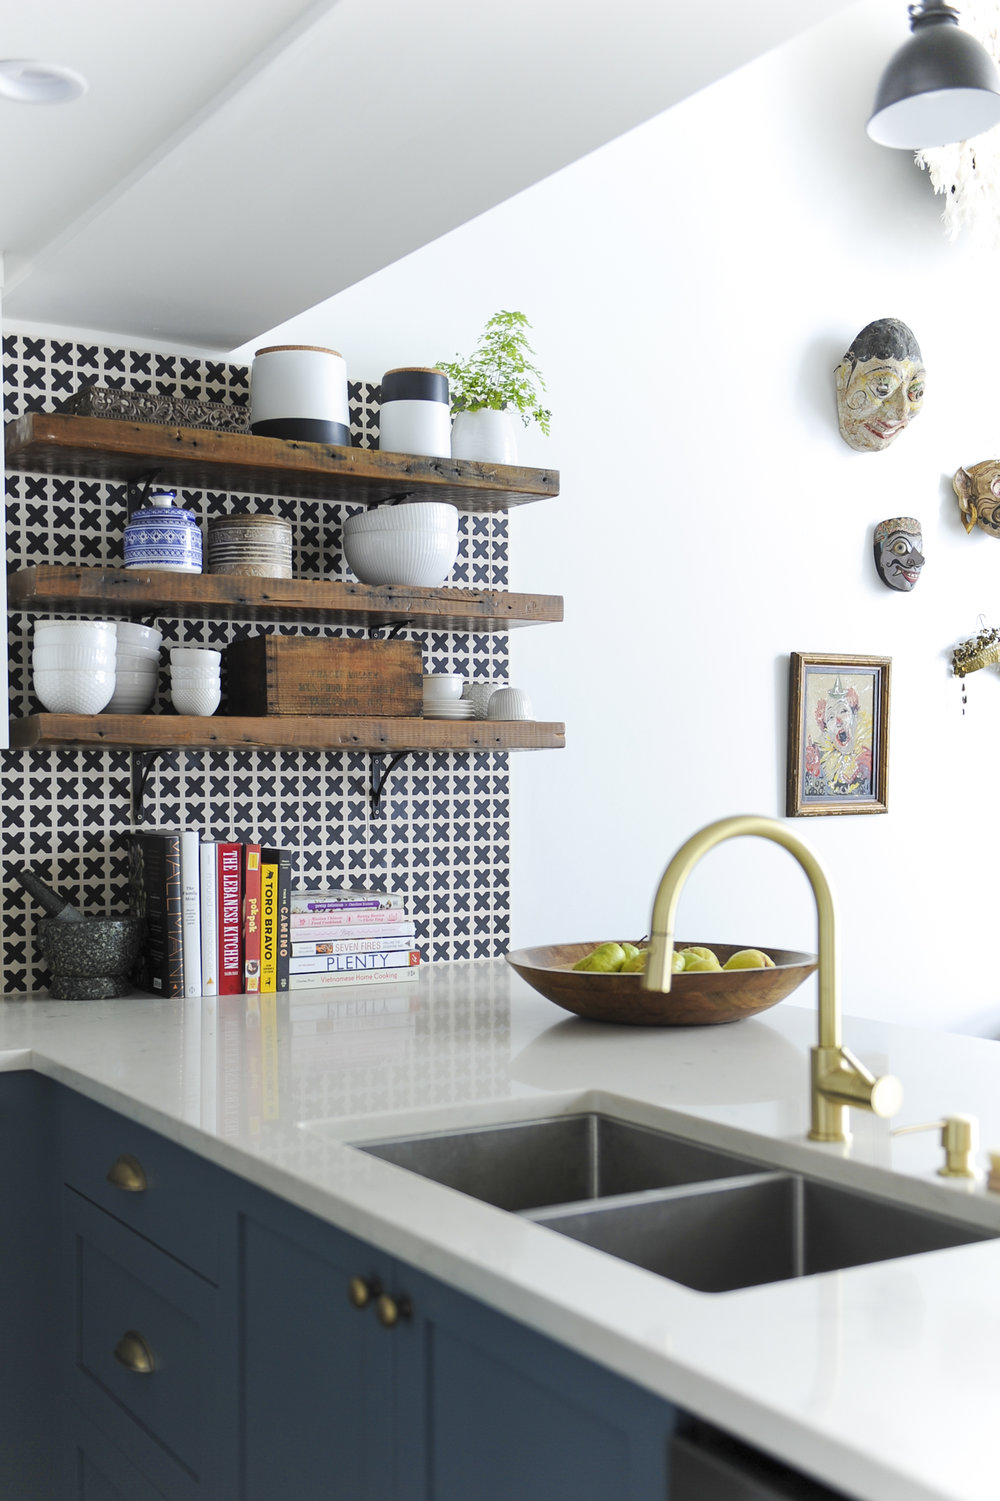 A sunlit kitchen counter and wooden shelves on a black and white patterned tiled wall, complete with various kitchen items, including bowls and ceramic jars on the shelves, and a wooden bowl of fruit and various cookbooks beside a double sink with gold fixtures.